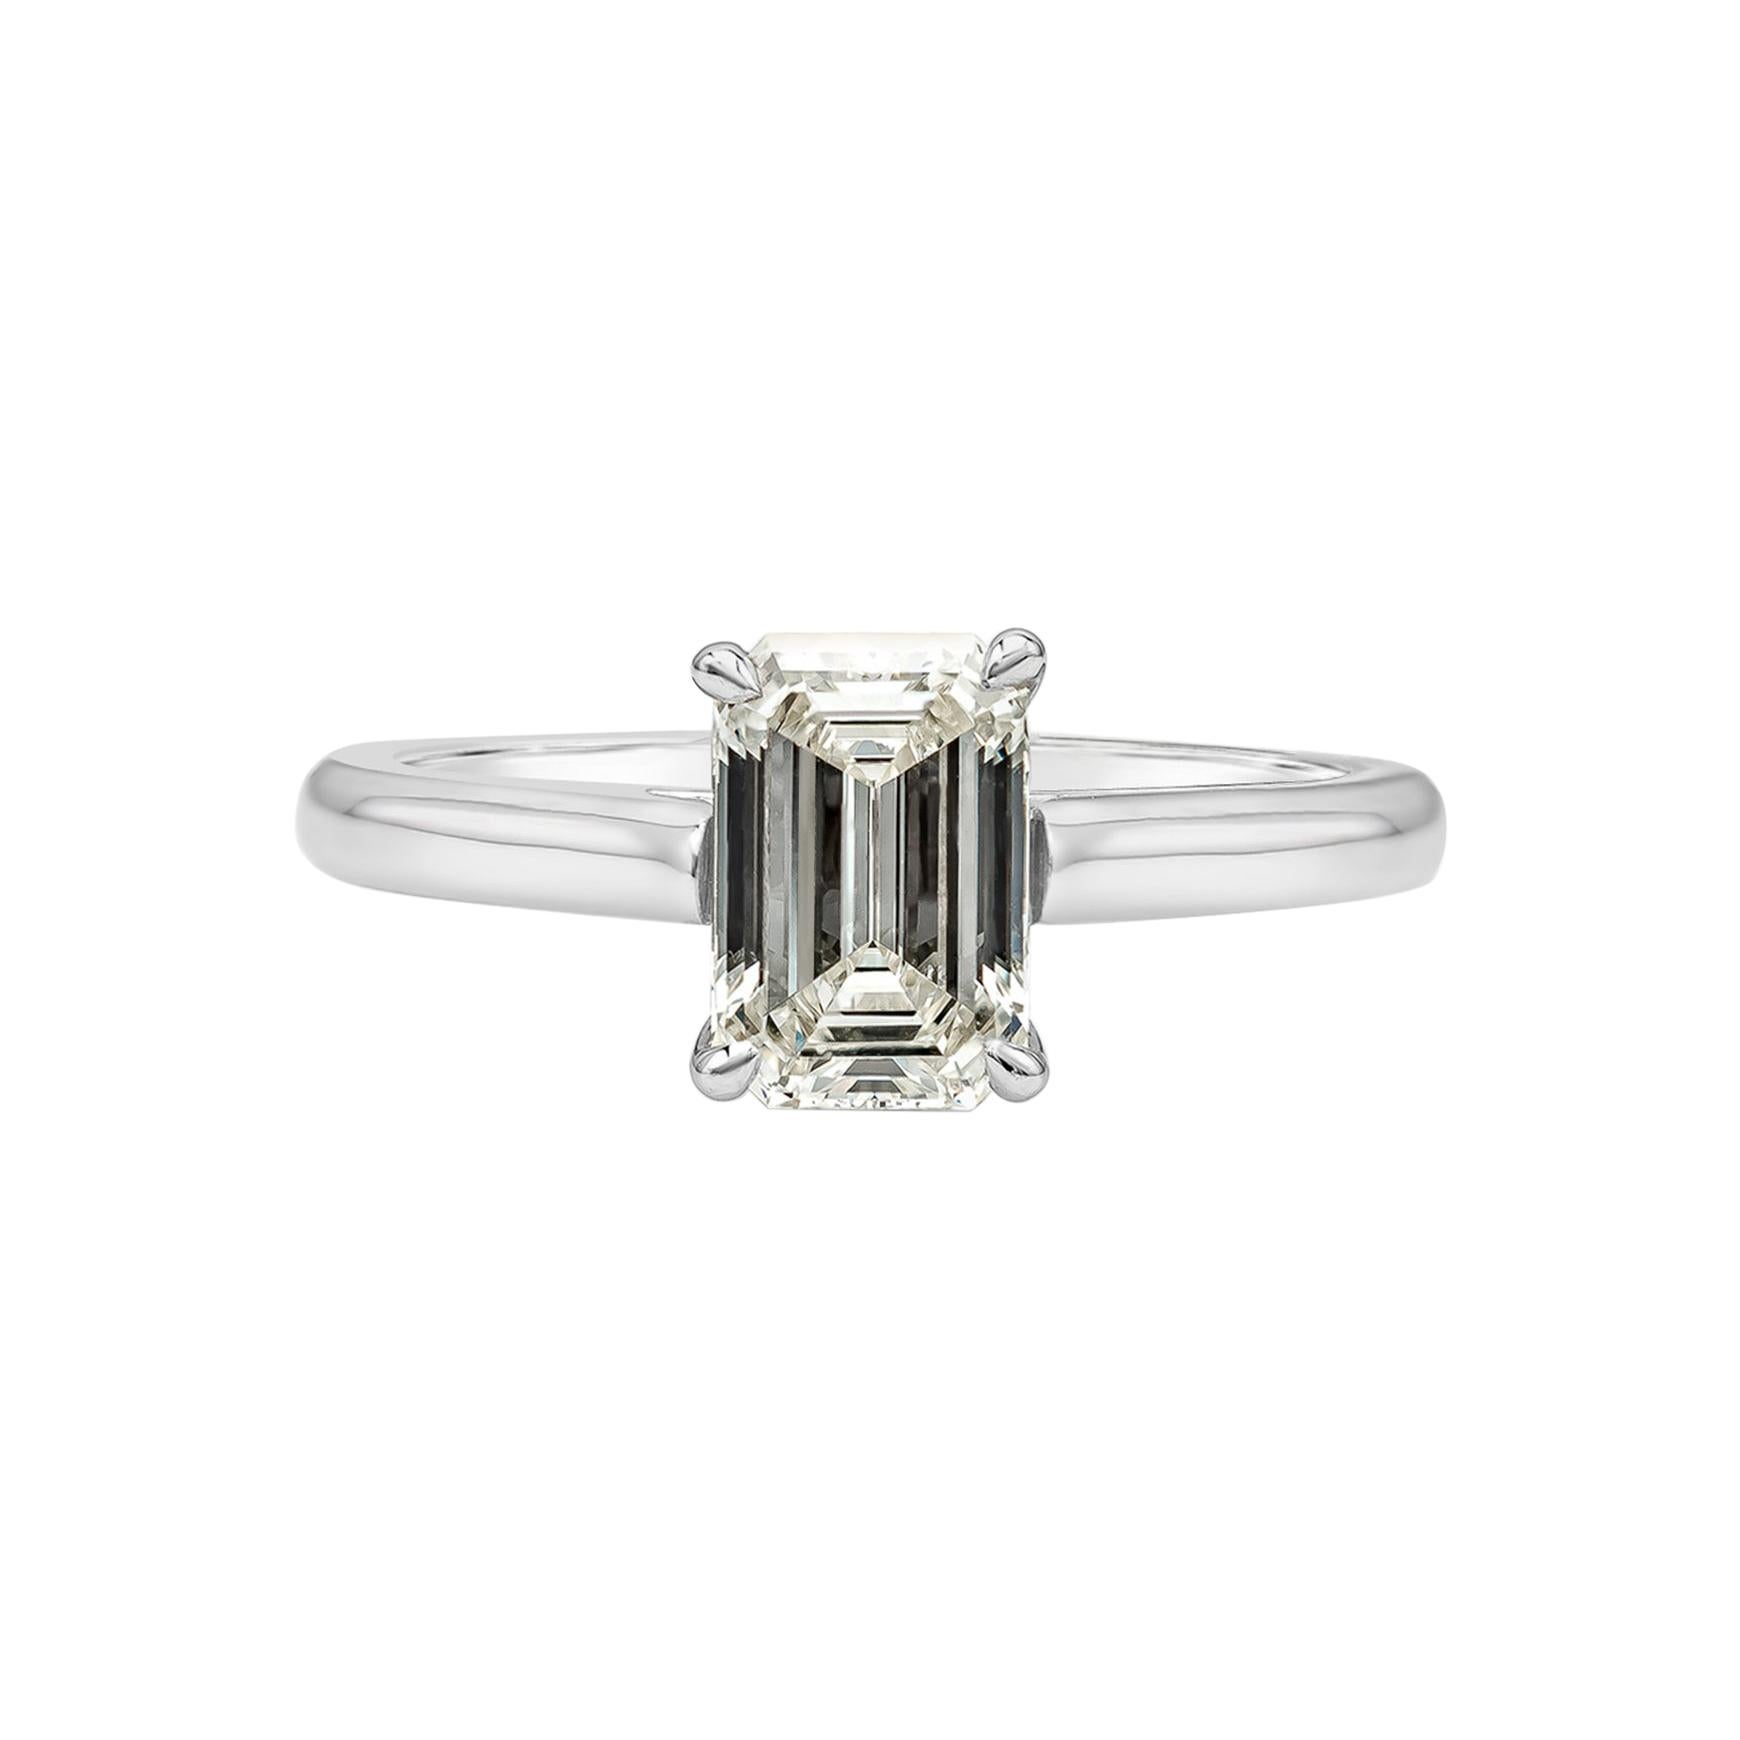 GIA Certified 1.33 Carat Emerald Cut Diamond Solitaire Engagement Ring